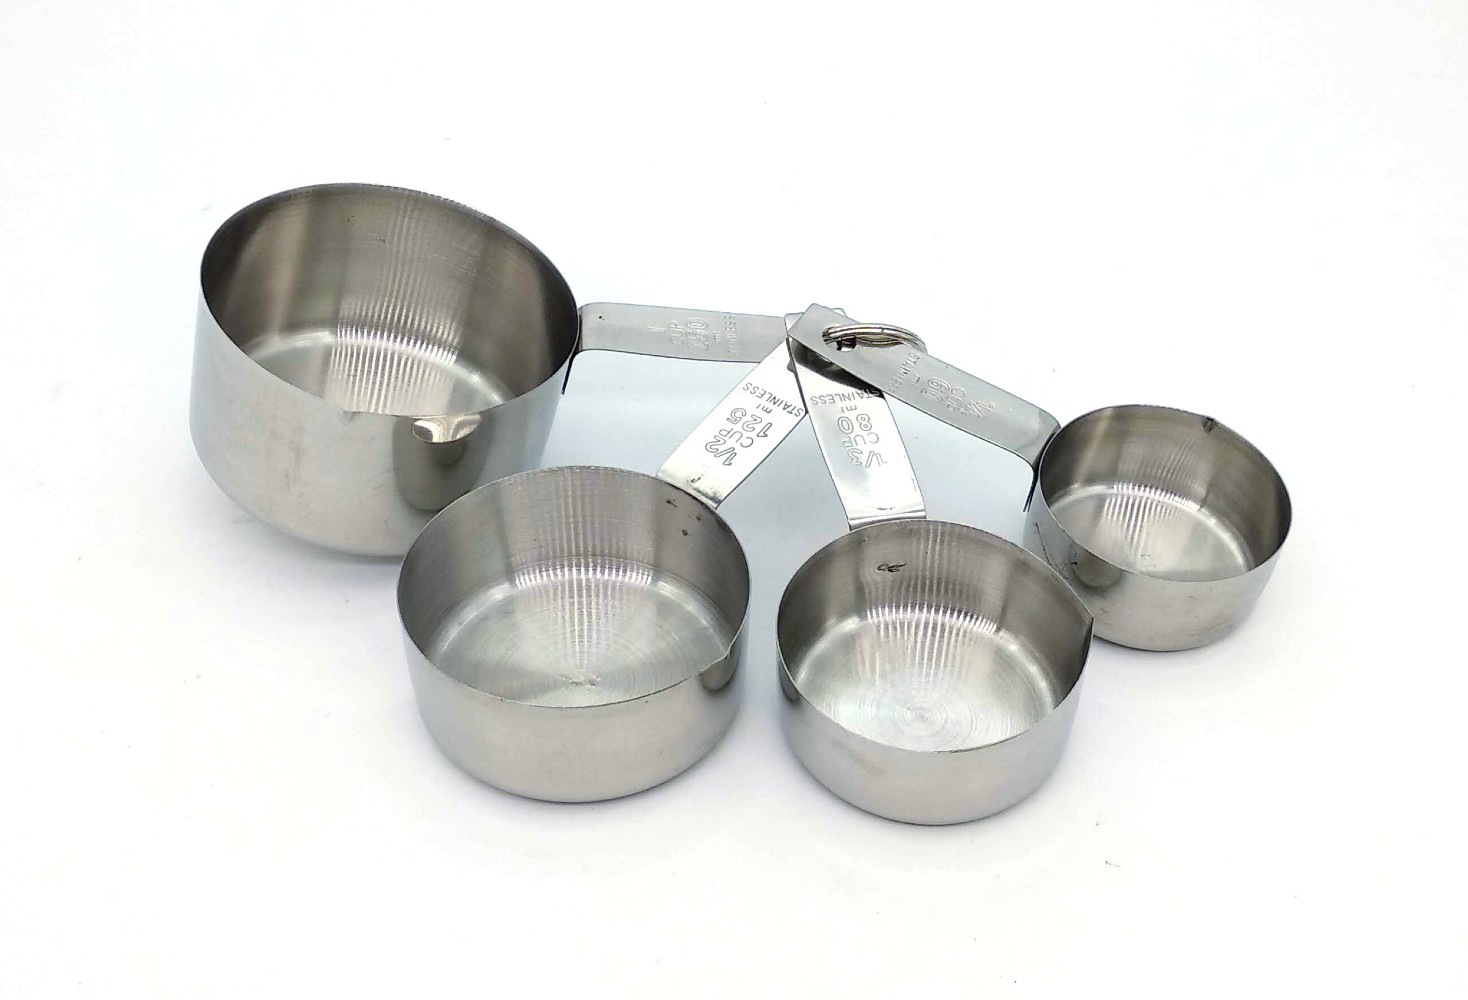 Stainless Steel 4 Pc Cups Baking Cooking Measuring Spoon